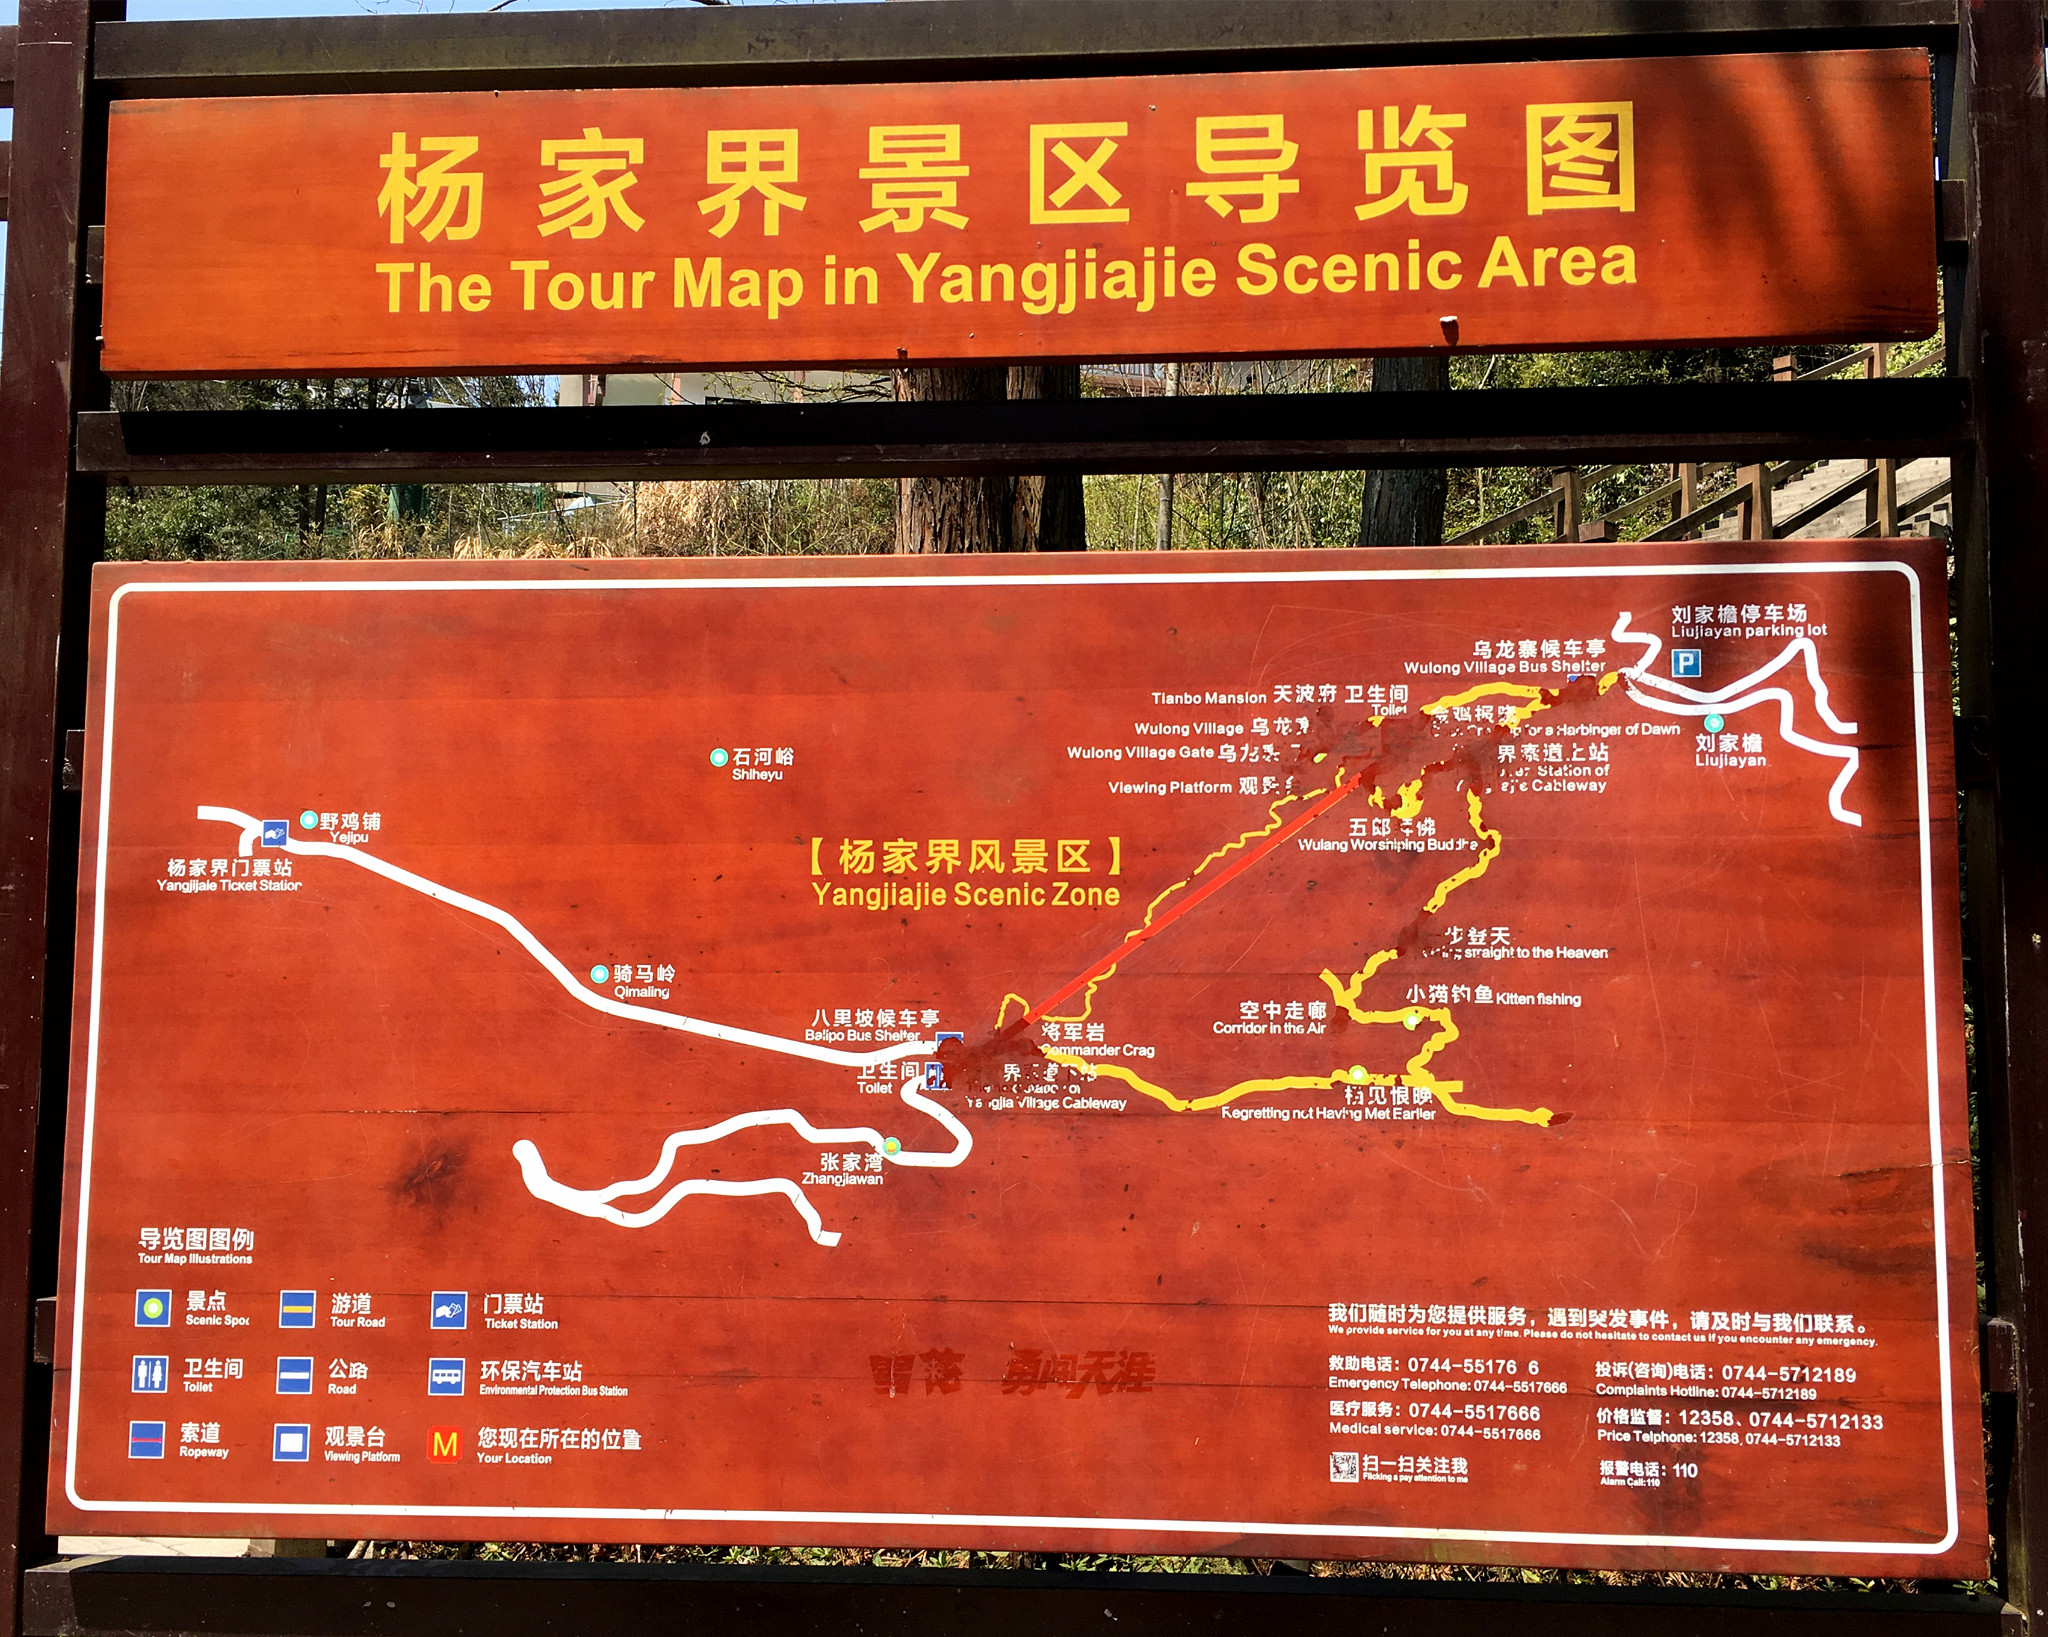 yuanjianjie tourist map